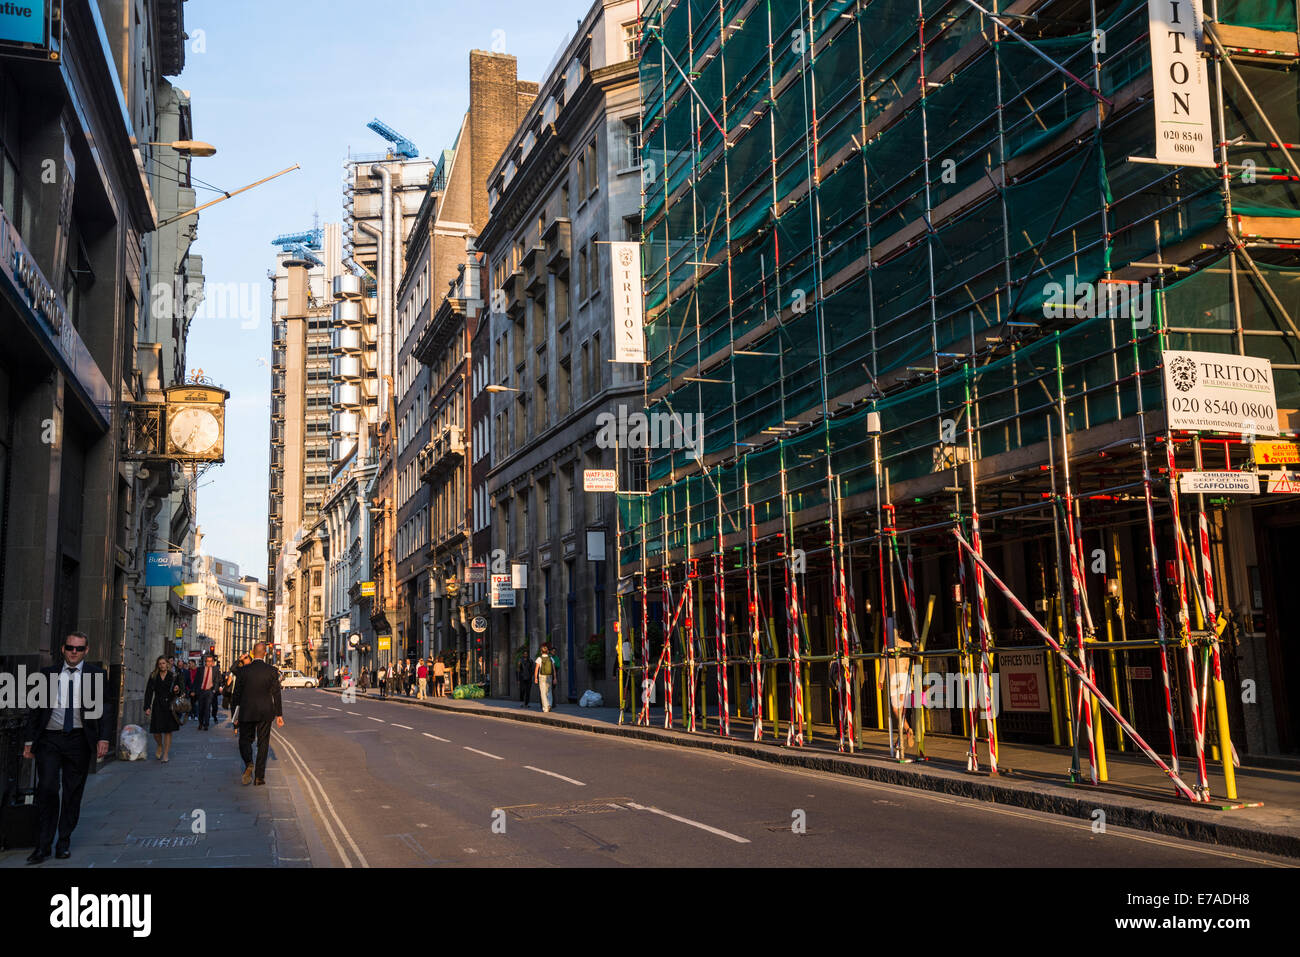 Building work in Cornhill street, Square Mile, City of London, UK - Stock Image